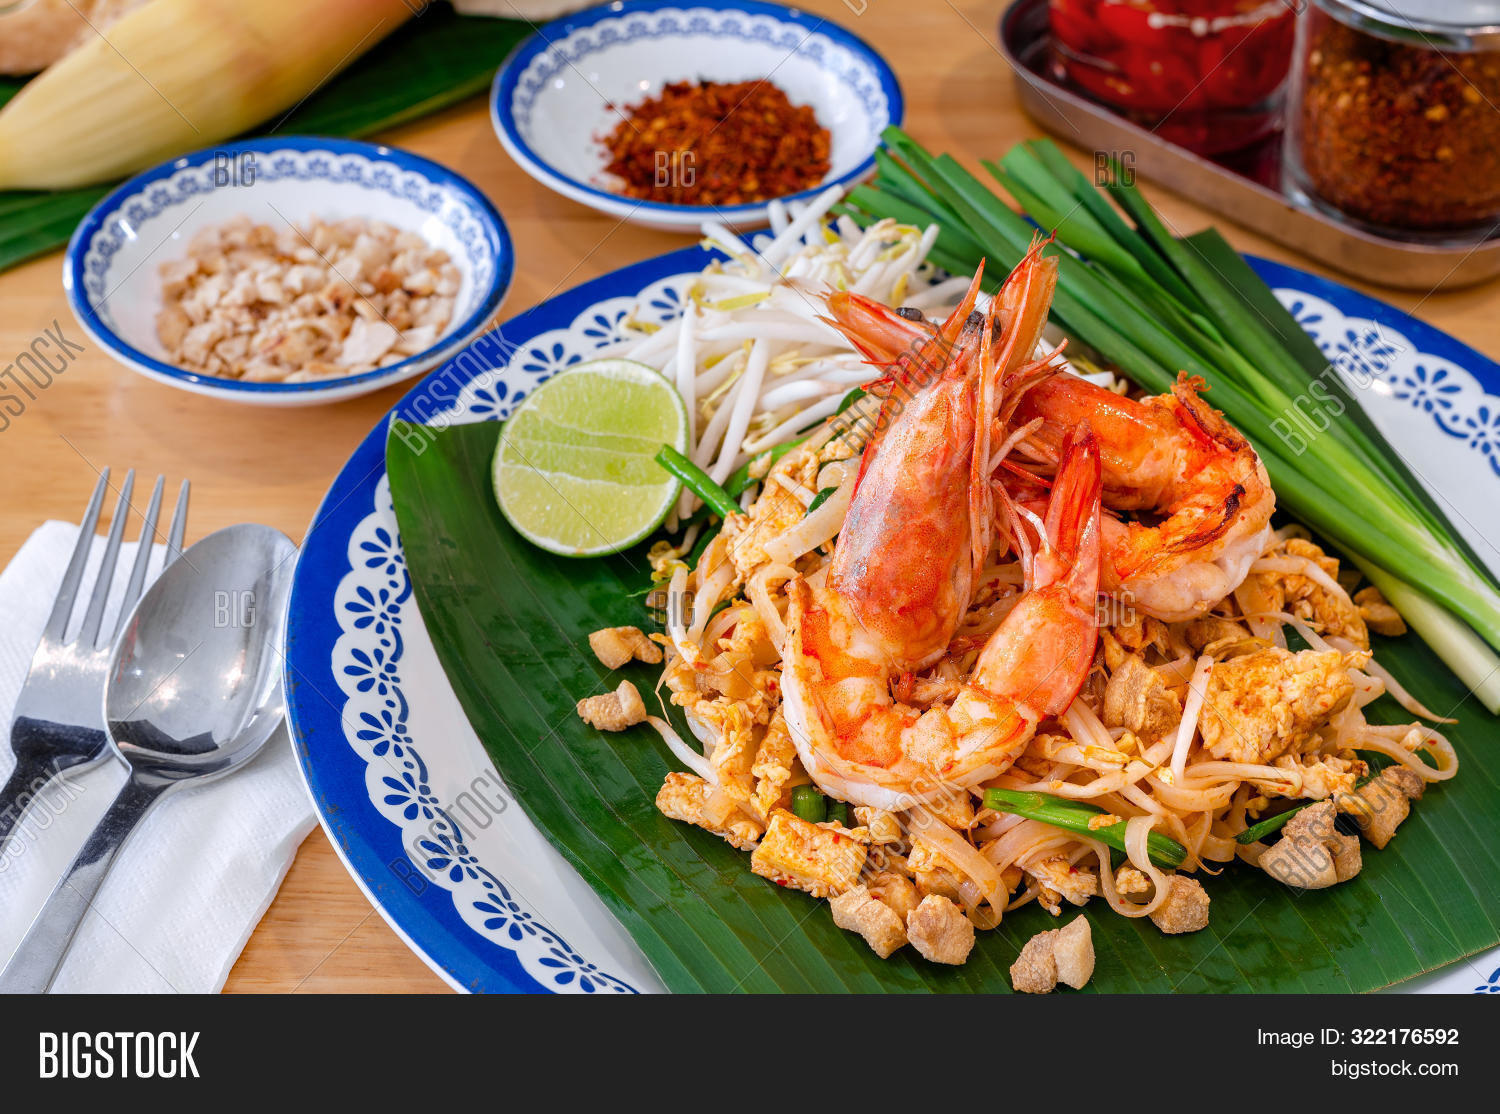 ancient,asia,asian,background,banana,blossom,cooking,cuisine,delicious,dinner,dish,drink,flat,food,fried,gourmet,homemade,ingredient,lay,leaf,lemon,local,lunch,meal,noodle,original,pad,pad-thai,peanuts,pepper,photography,plate,prawn,sauce,shrimp,spicy,stir,street,style,table,tasty,thai,top,traditional,vegetable,view,wooden